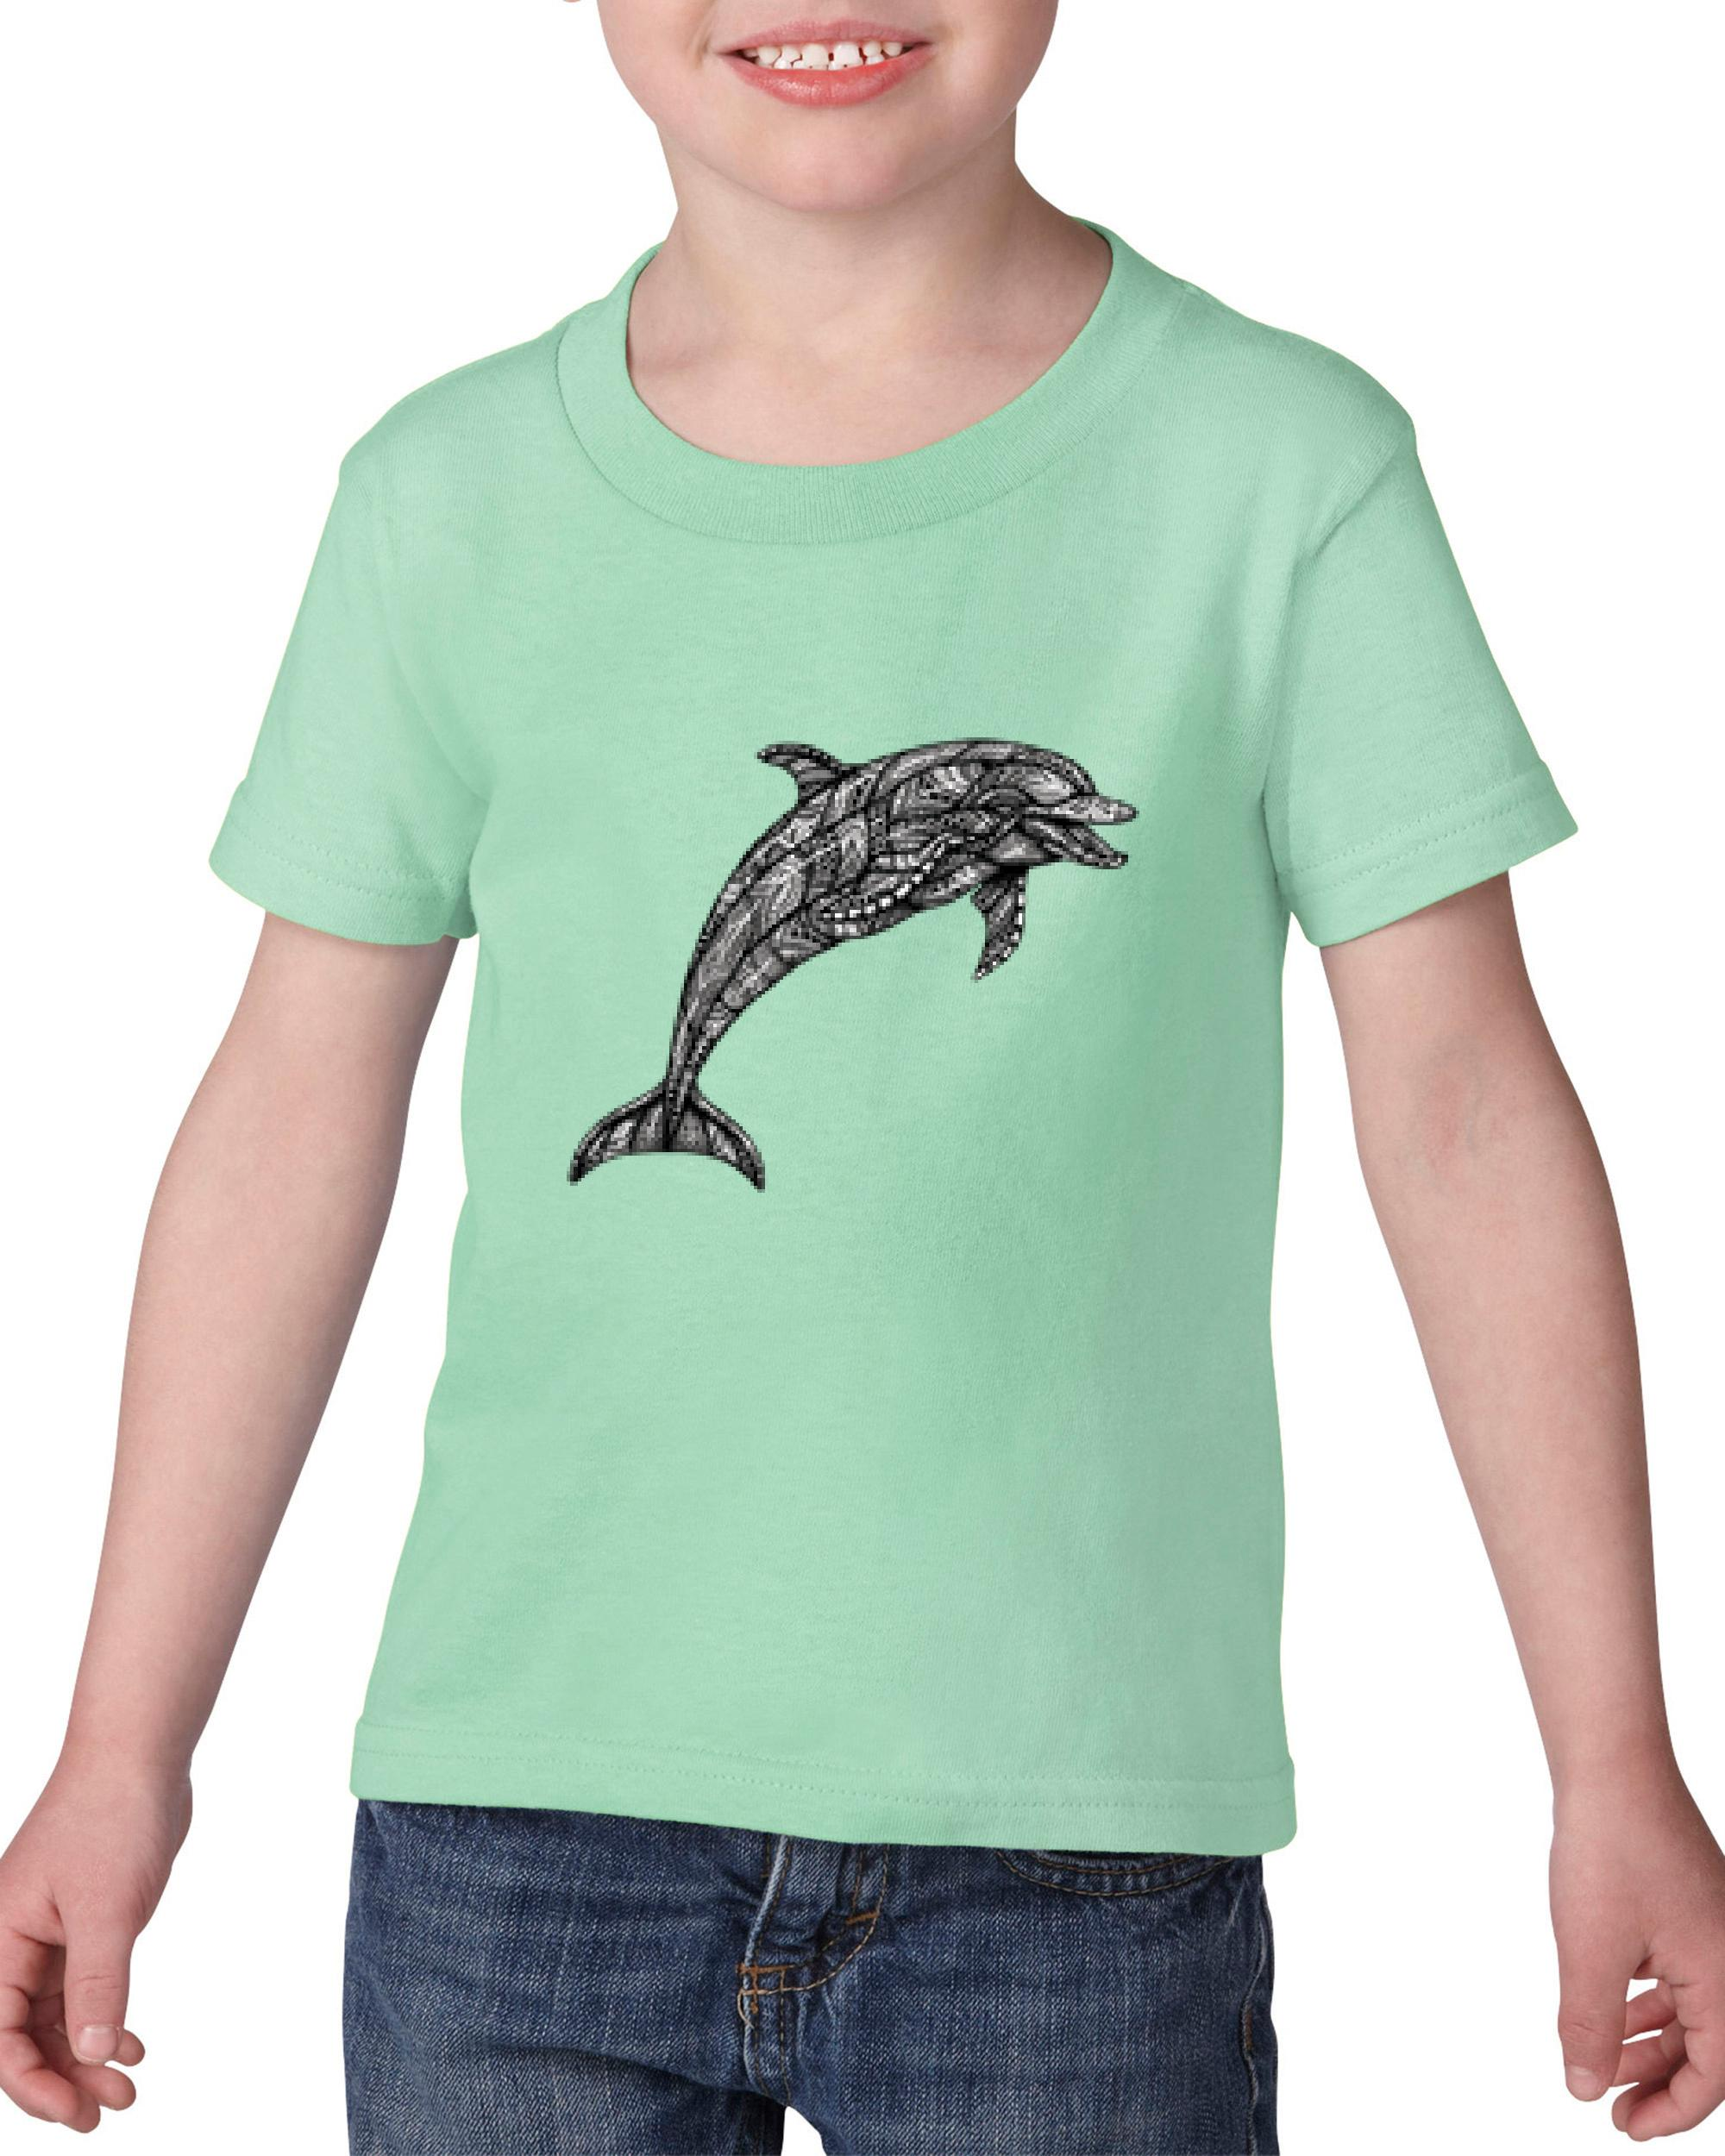 Artix Dolphin w Bandana Pattern Gift for Dolphin Lovers Christmas Birthday Heavy Cotton Toddler Kids T-Shirt Tee Clothing